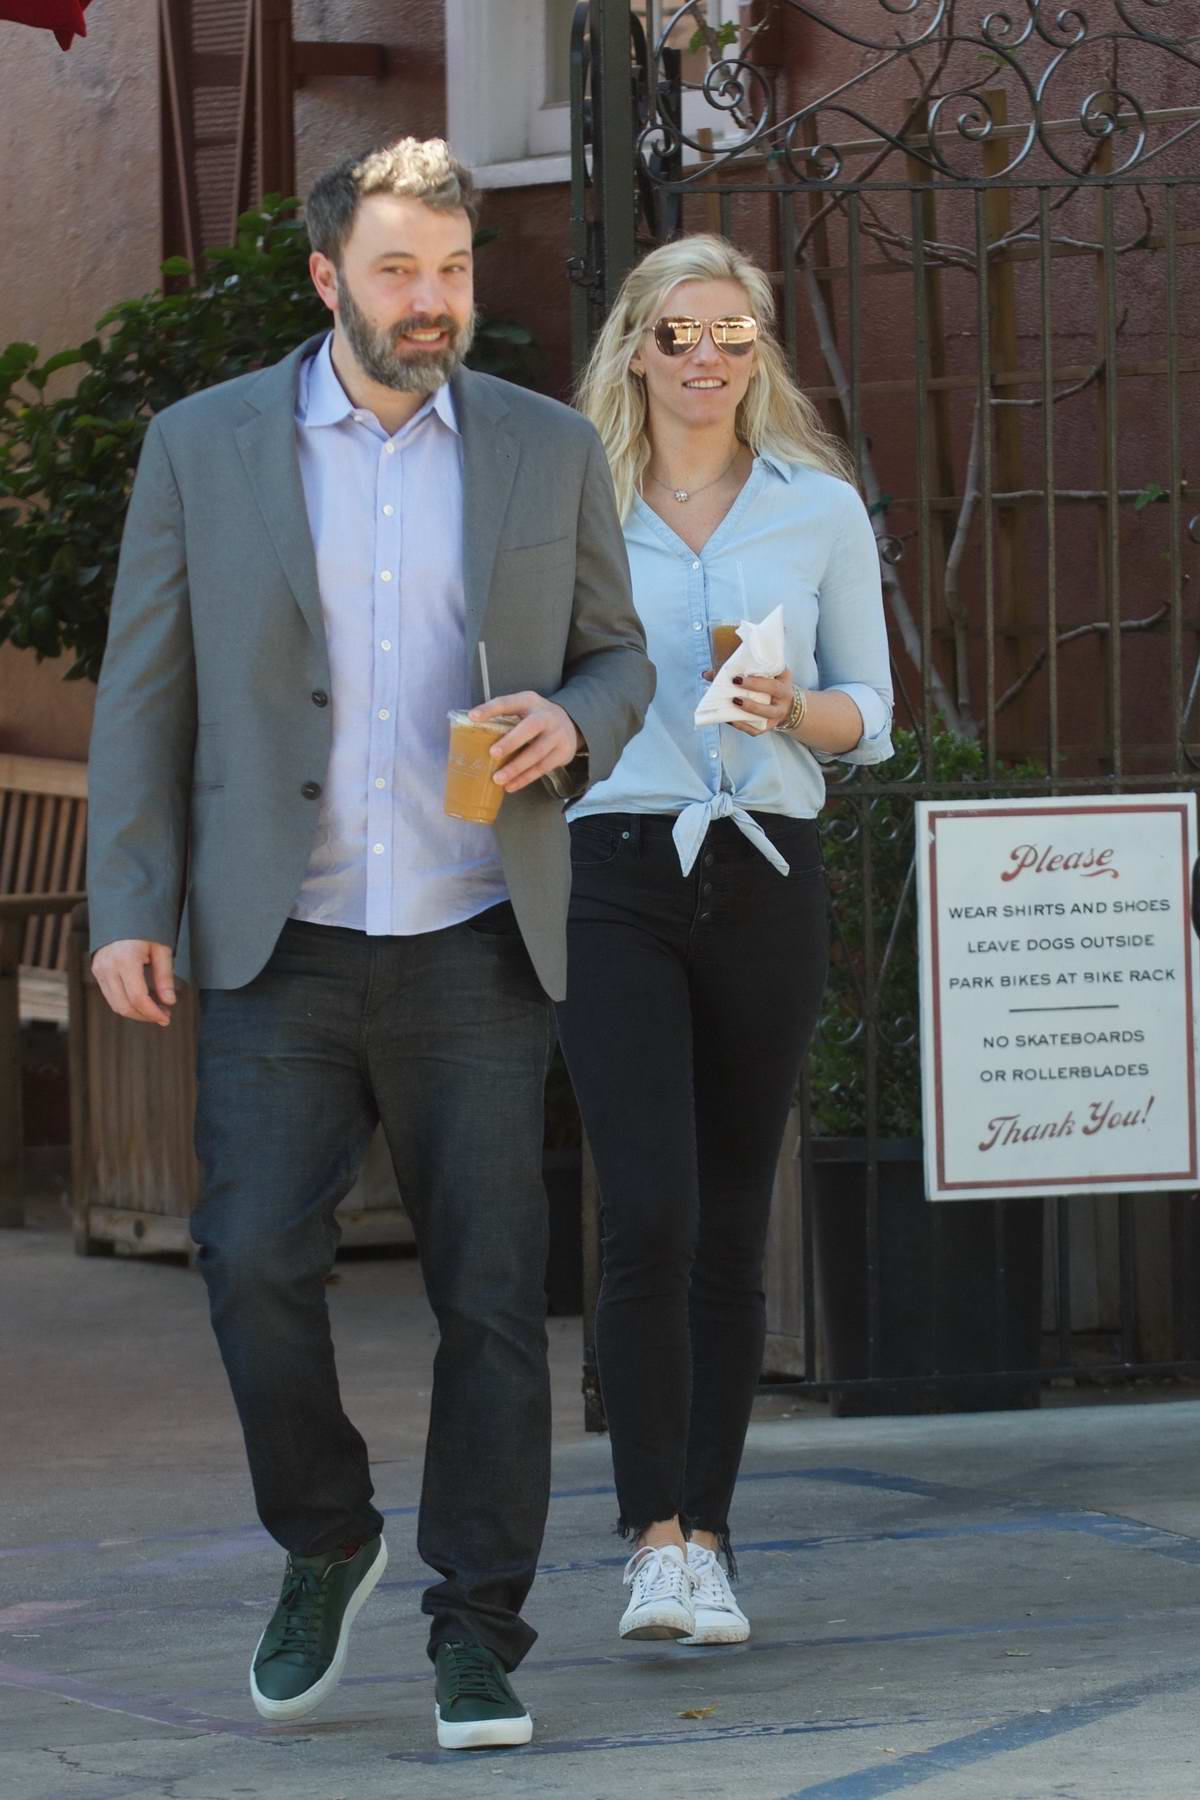 Lindsay Shookus and Ben Affleck grab lunch together in Brentwood, Los Angeles